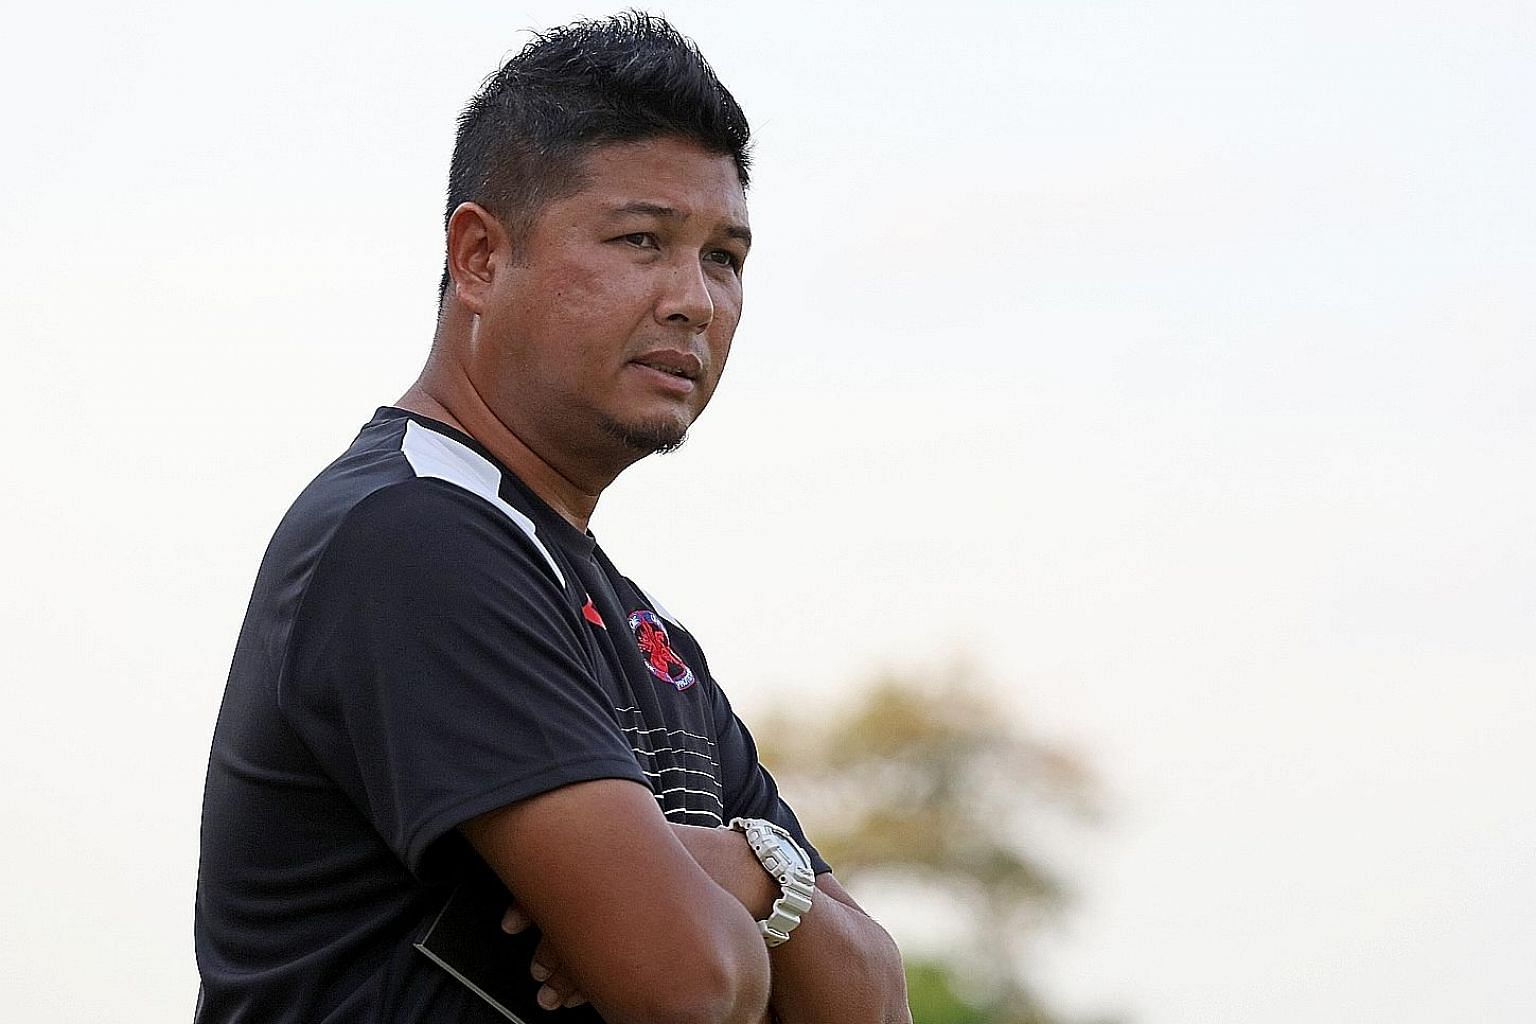 Aidil Sharin says that observing and learning from past Home United coaches when he was a player has put him in good stead now that he has taken over the reins at the S-League side.